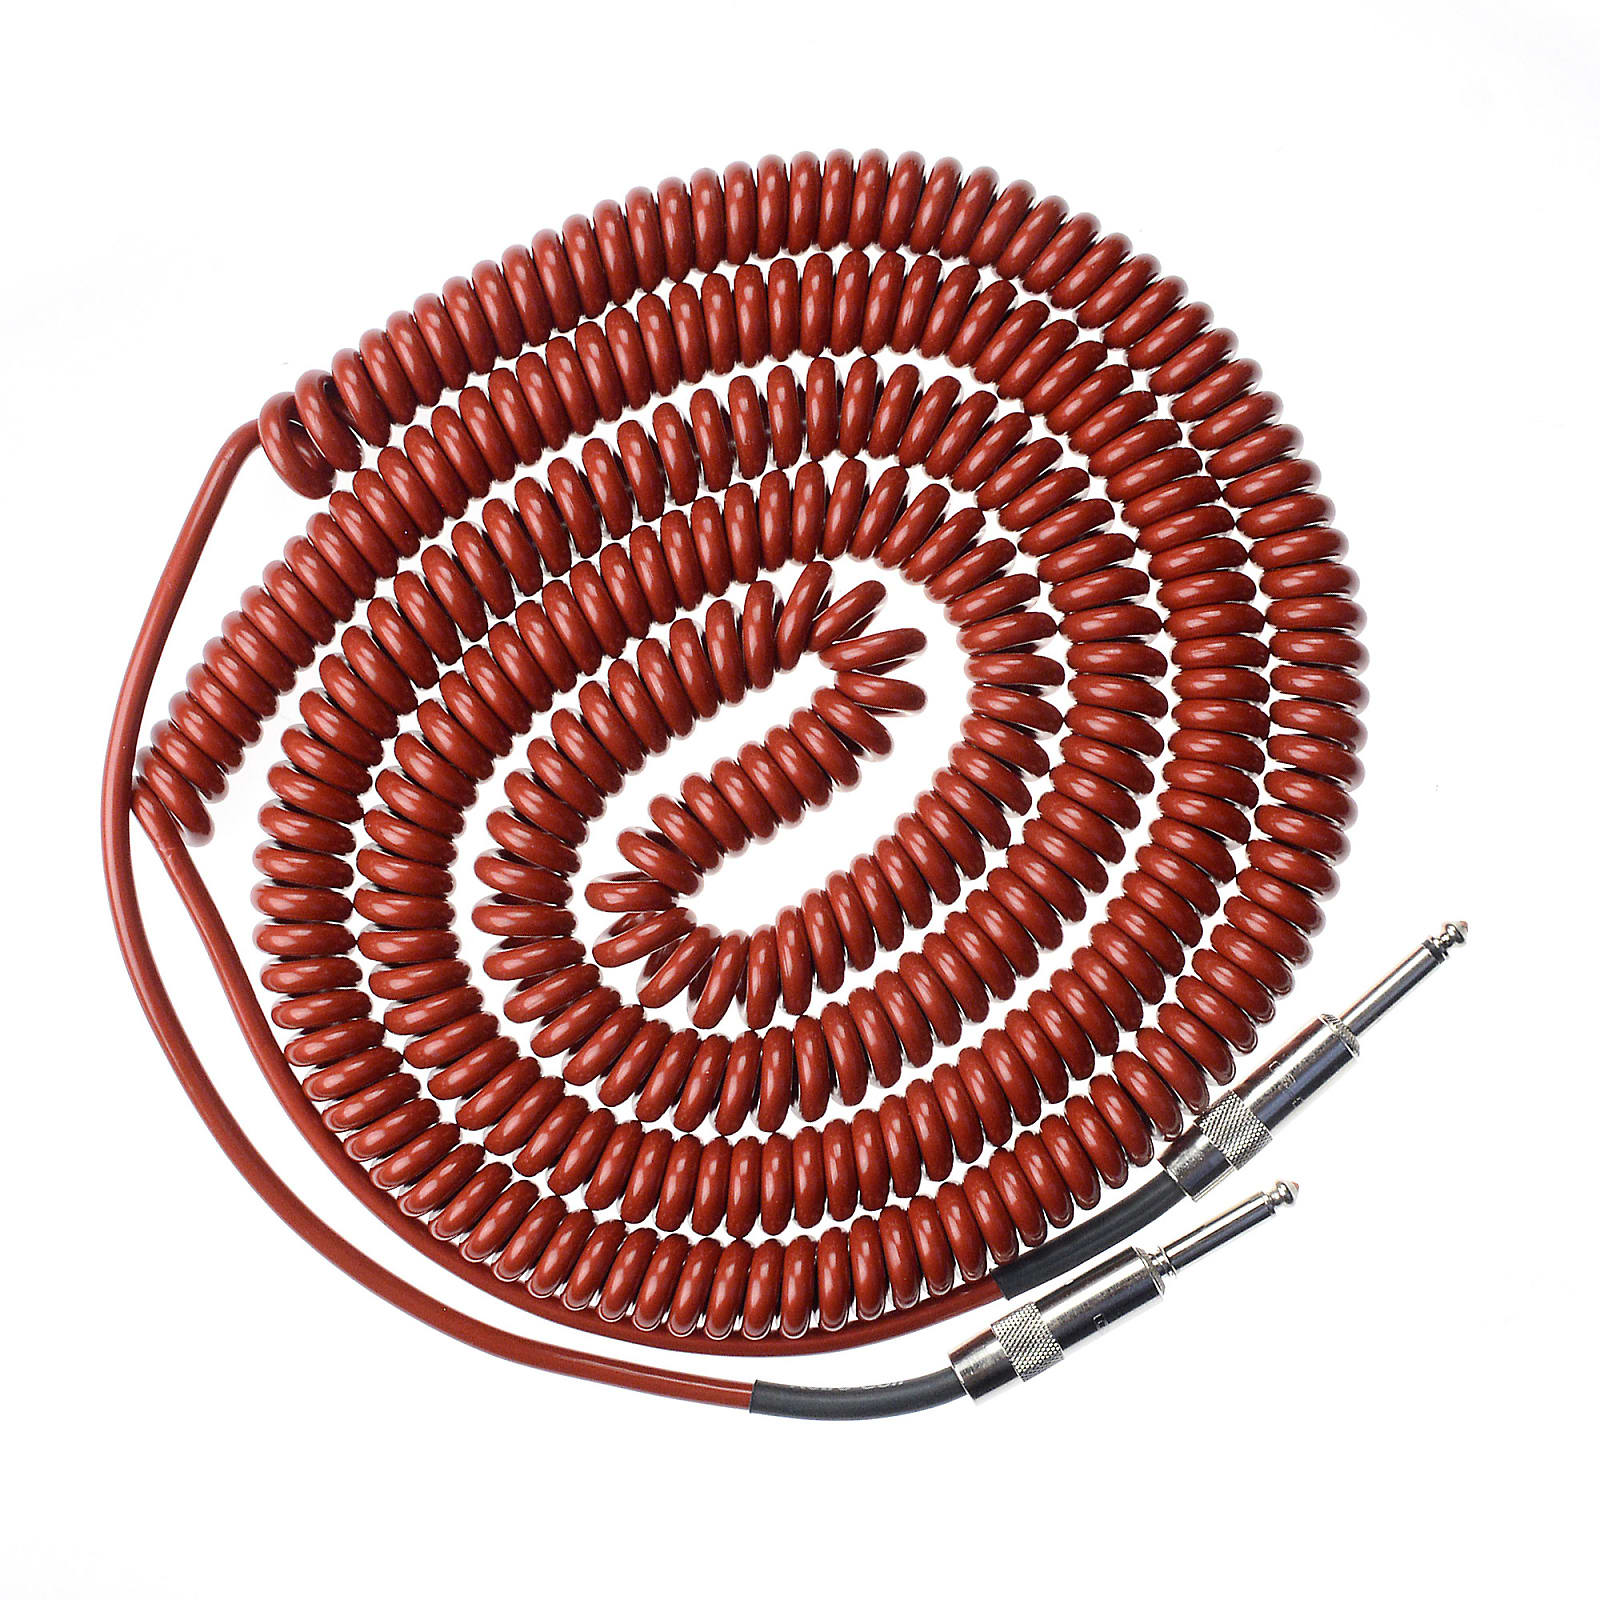 Lava Super Coil Instrument Cable 35' Straight-Straight Metallic Red